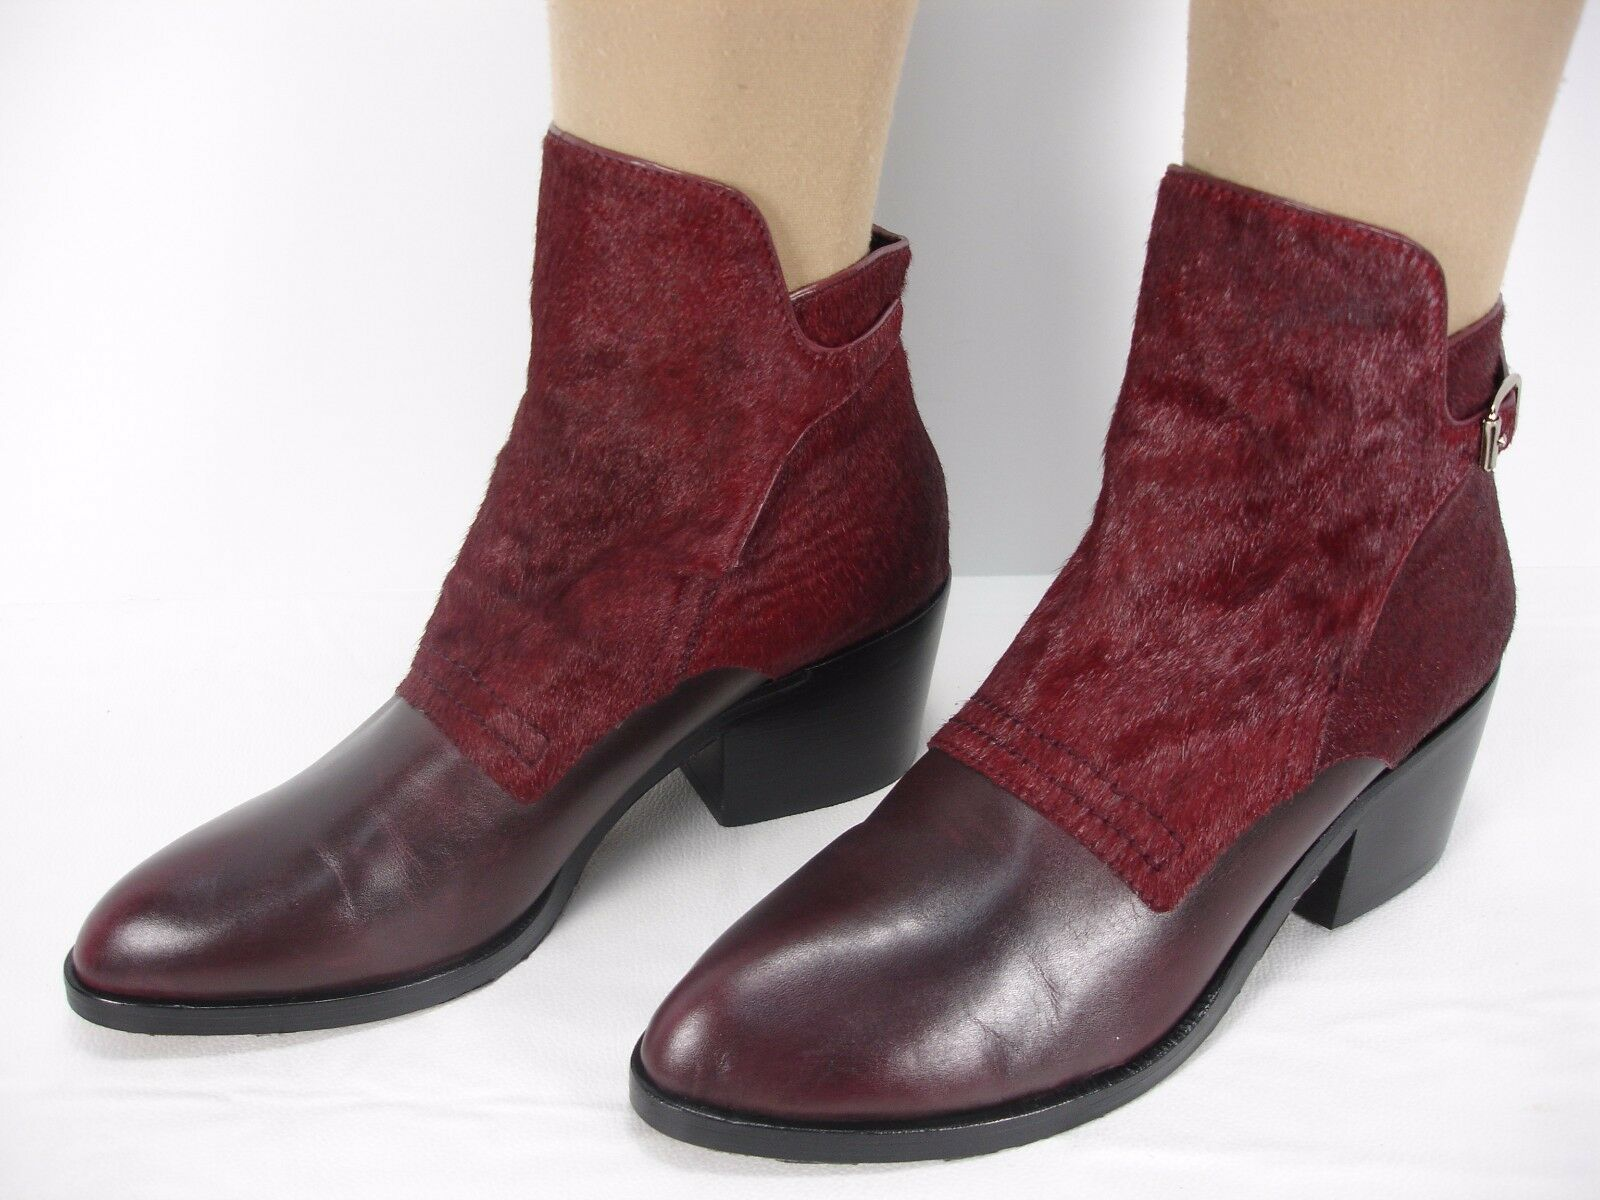 ALEXANDER WANG CARA BURGUNDY LEATHER CALF HAIR ANKLE bottes femmes 37 MINT